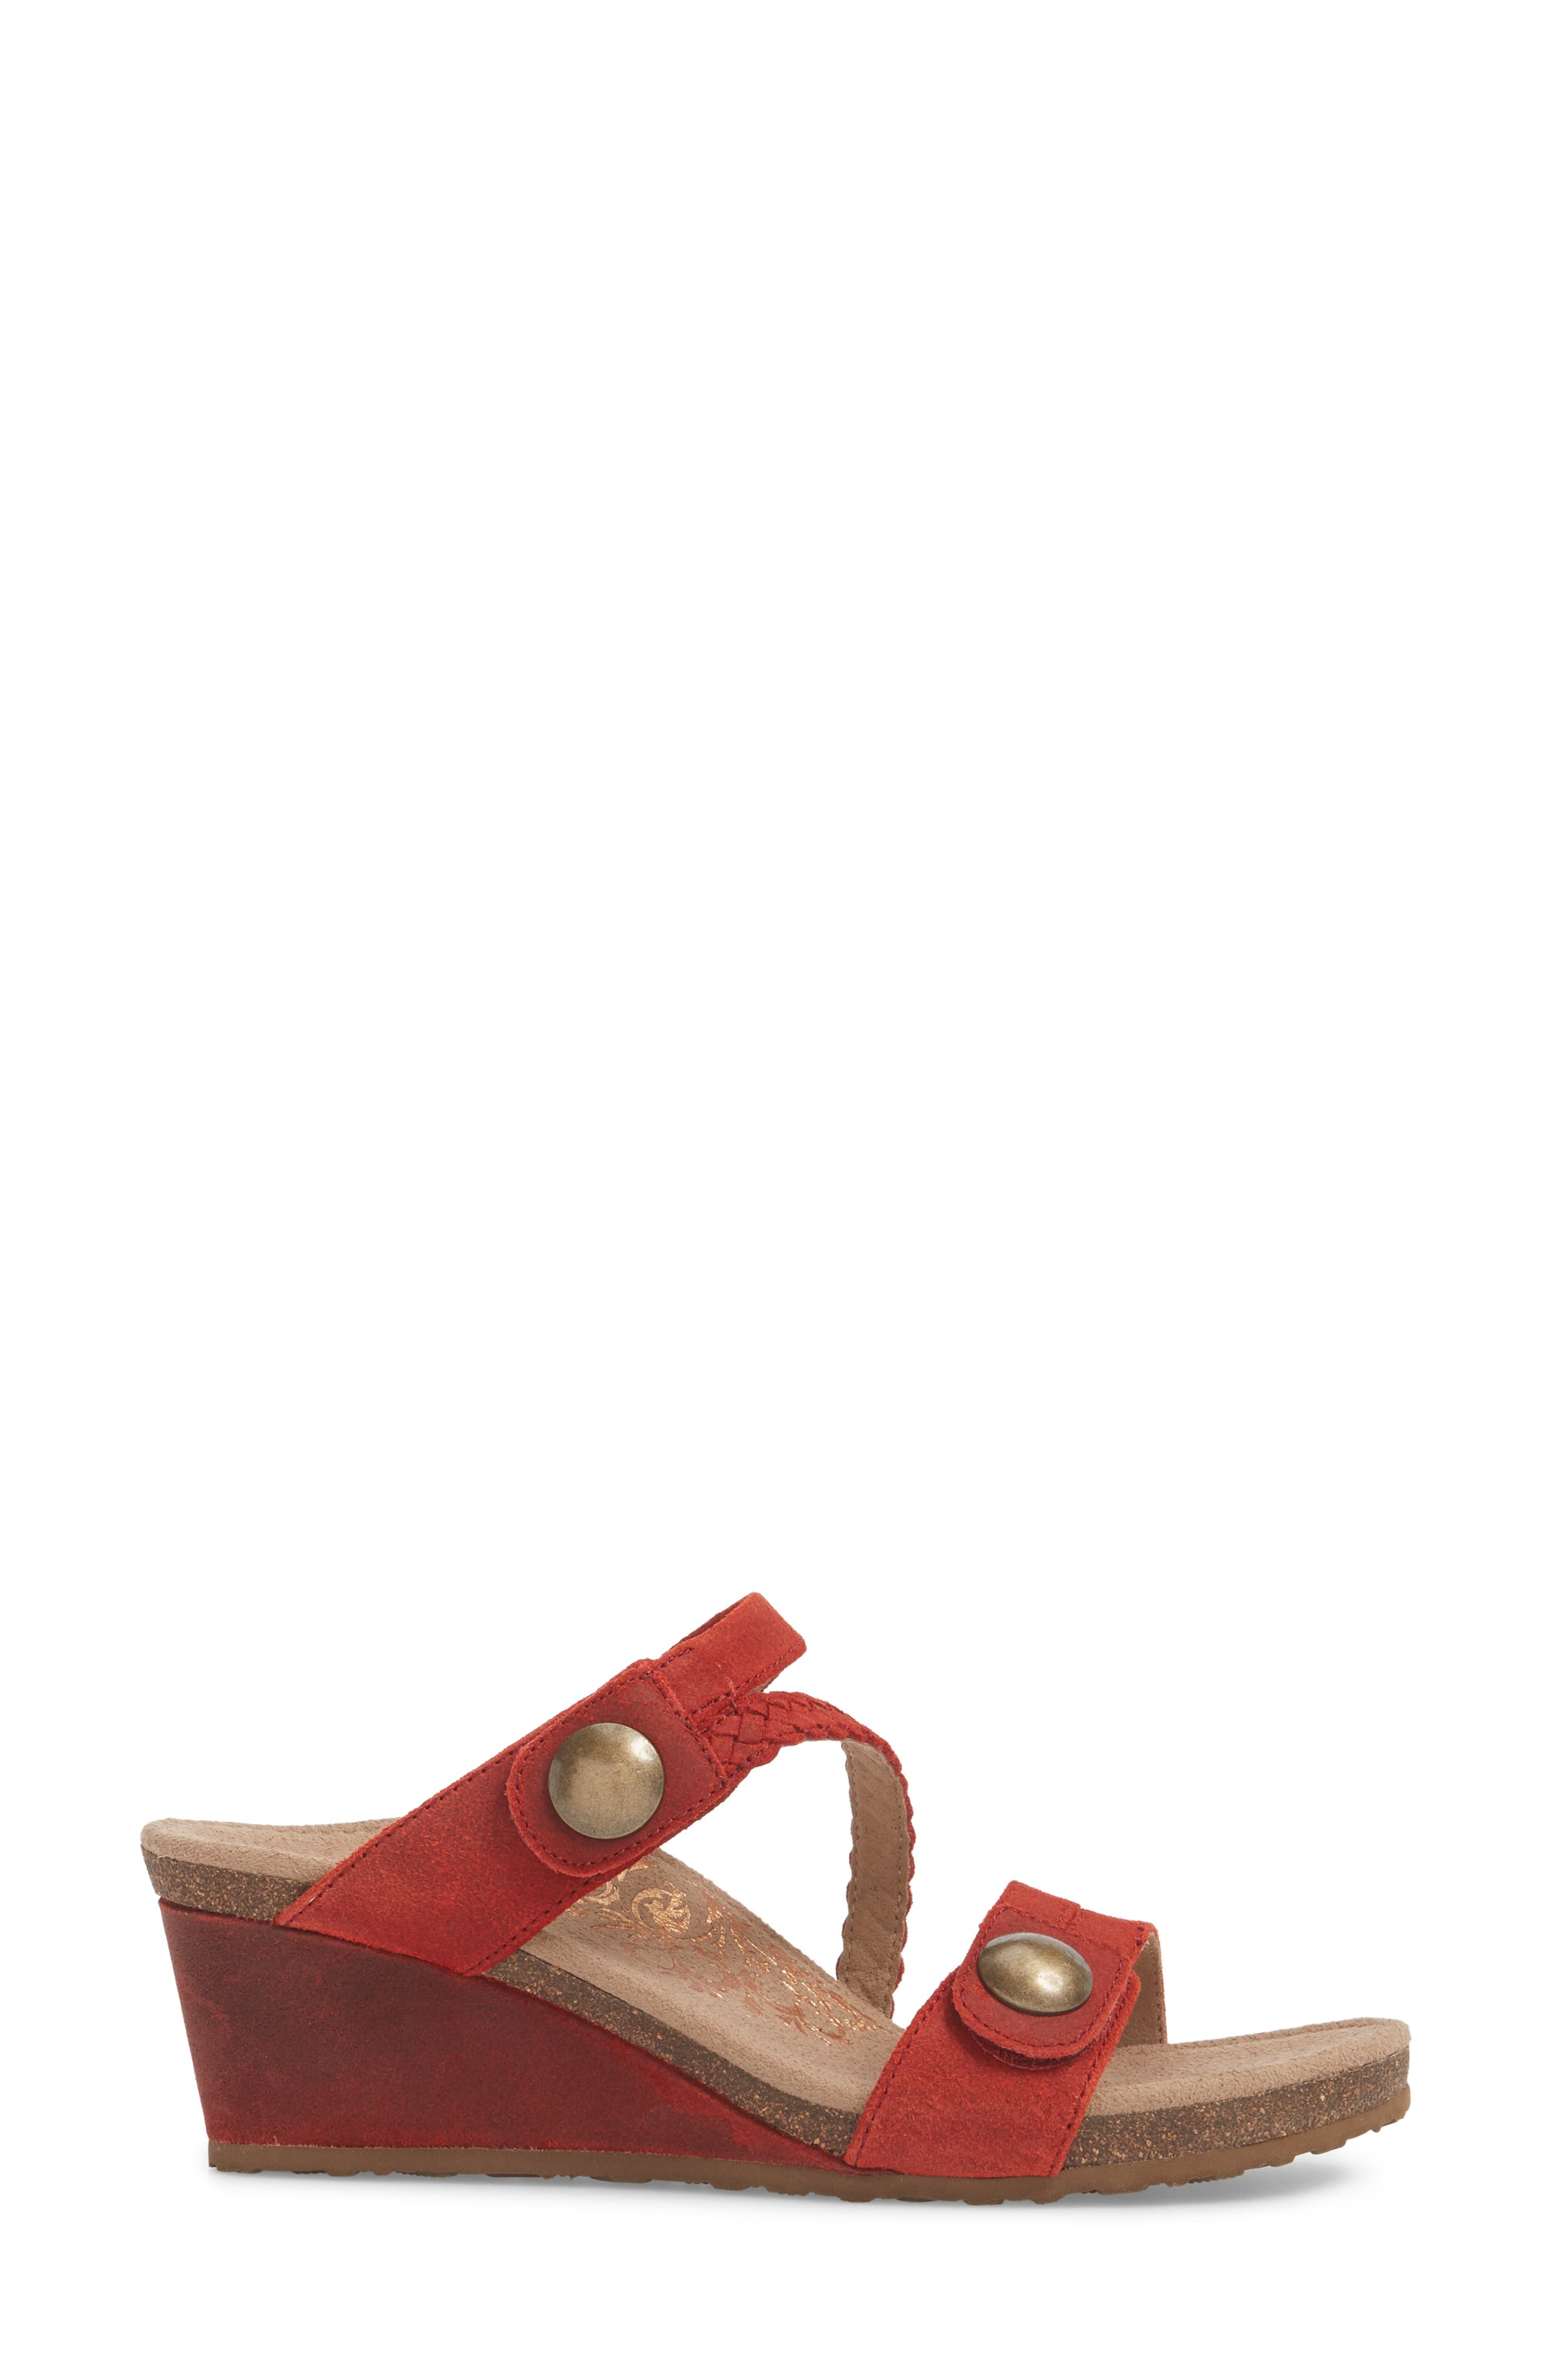 Lydia Strappy Wedge Sandal,                             Alternate thumbnail 3, color,                             Cayenne Leather